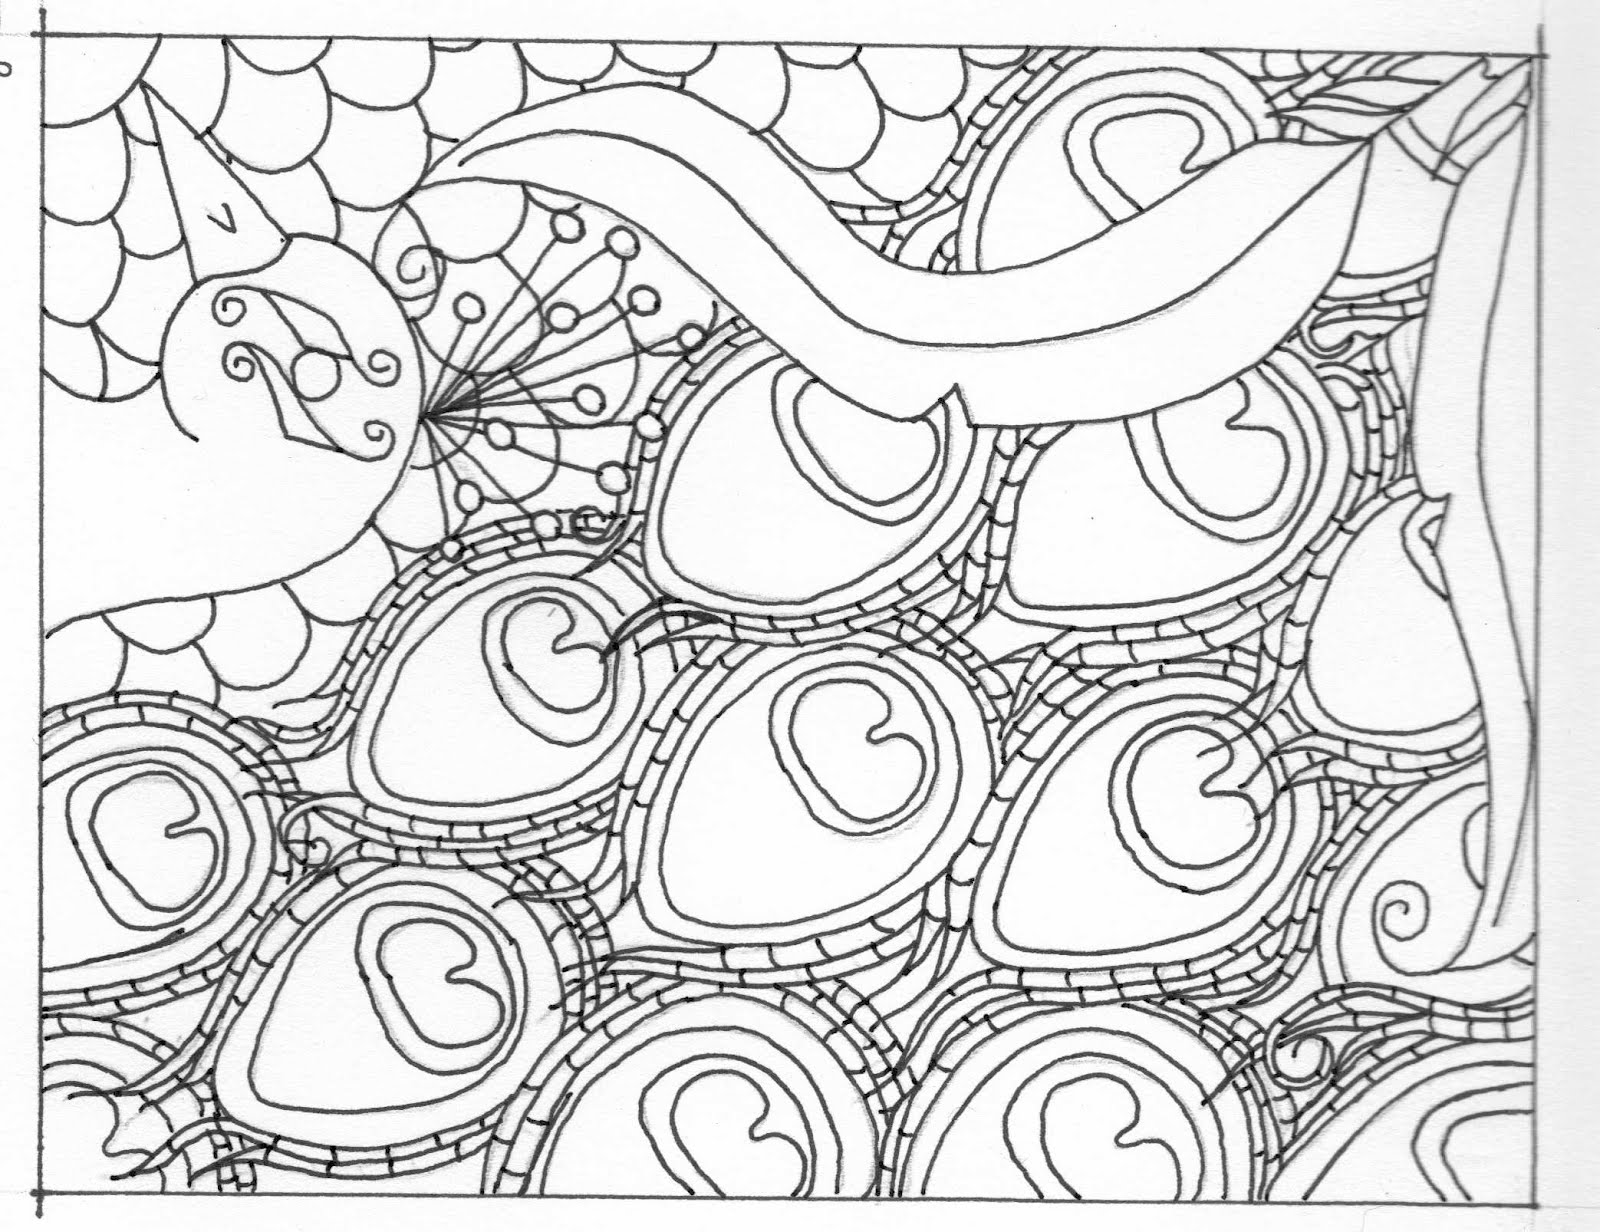 Coloring pages peacock - Friday January 20 2012